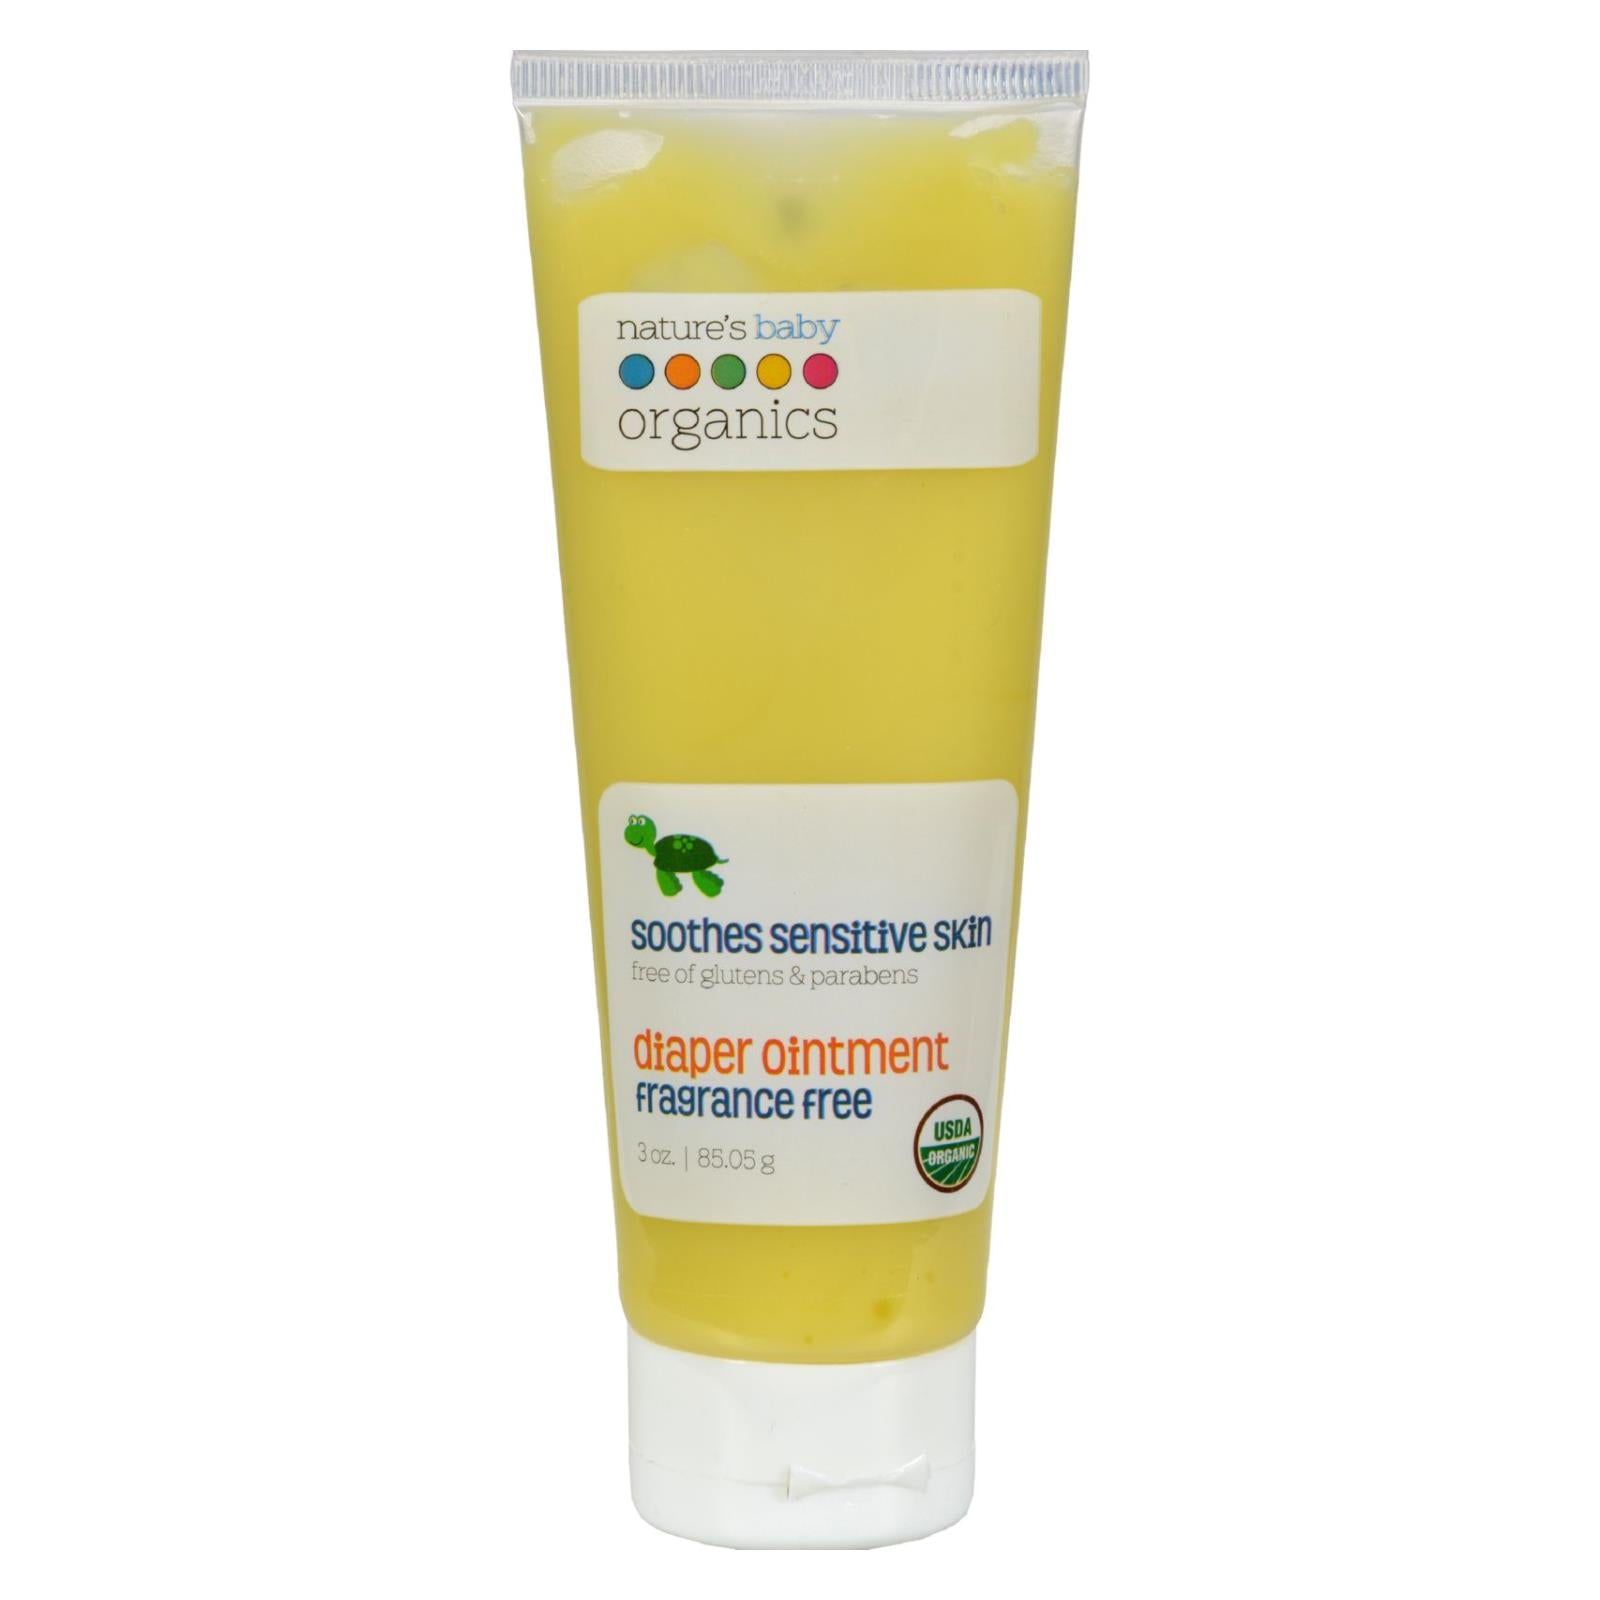 Buy Nature's Baby Organics Diaper Ointment All Natural Fragrance Free - 3 oz - Baby Skin and Sun from Veroeco.com